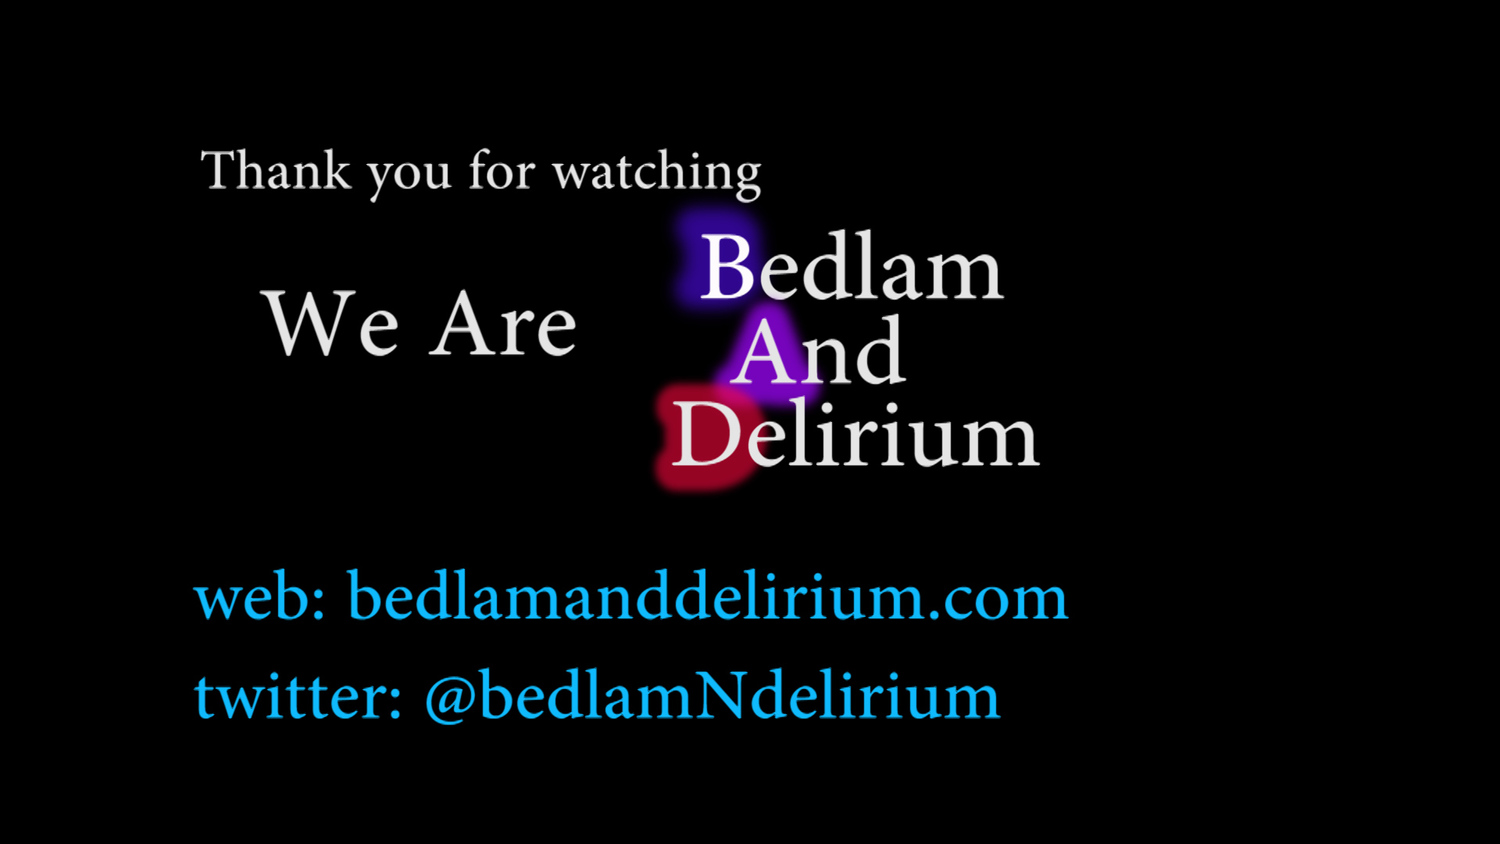 Bedlam And Delirium (BAD) Films LLC